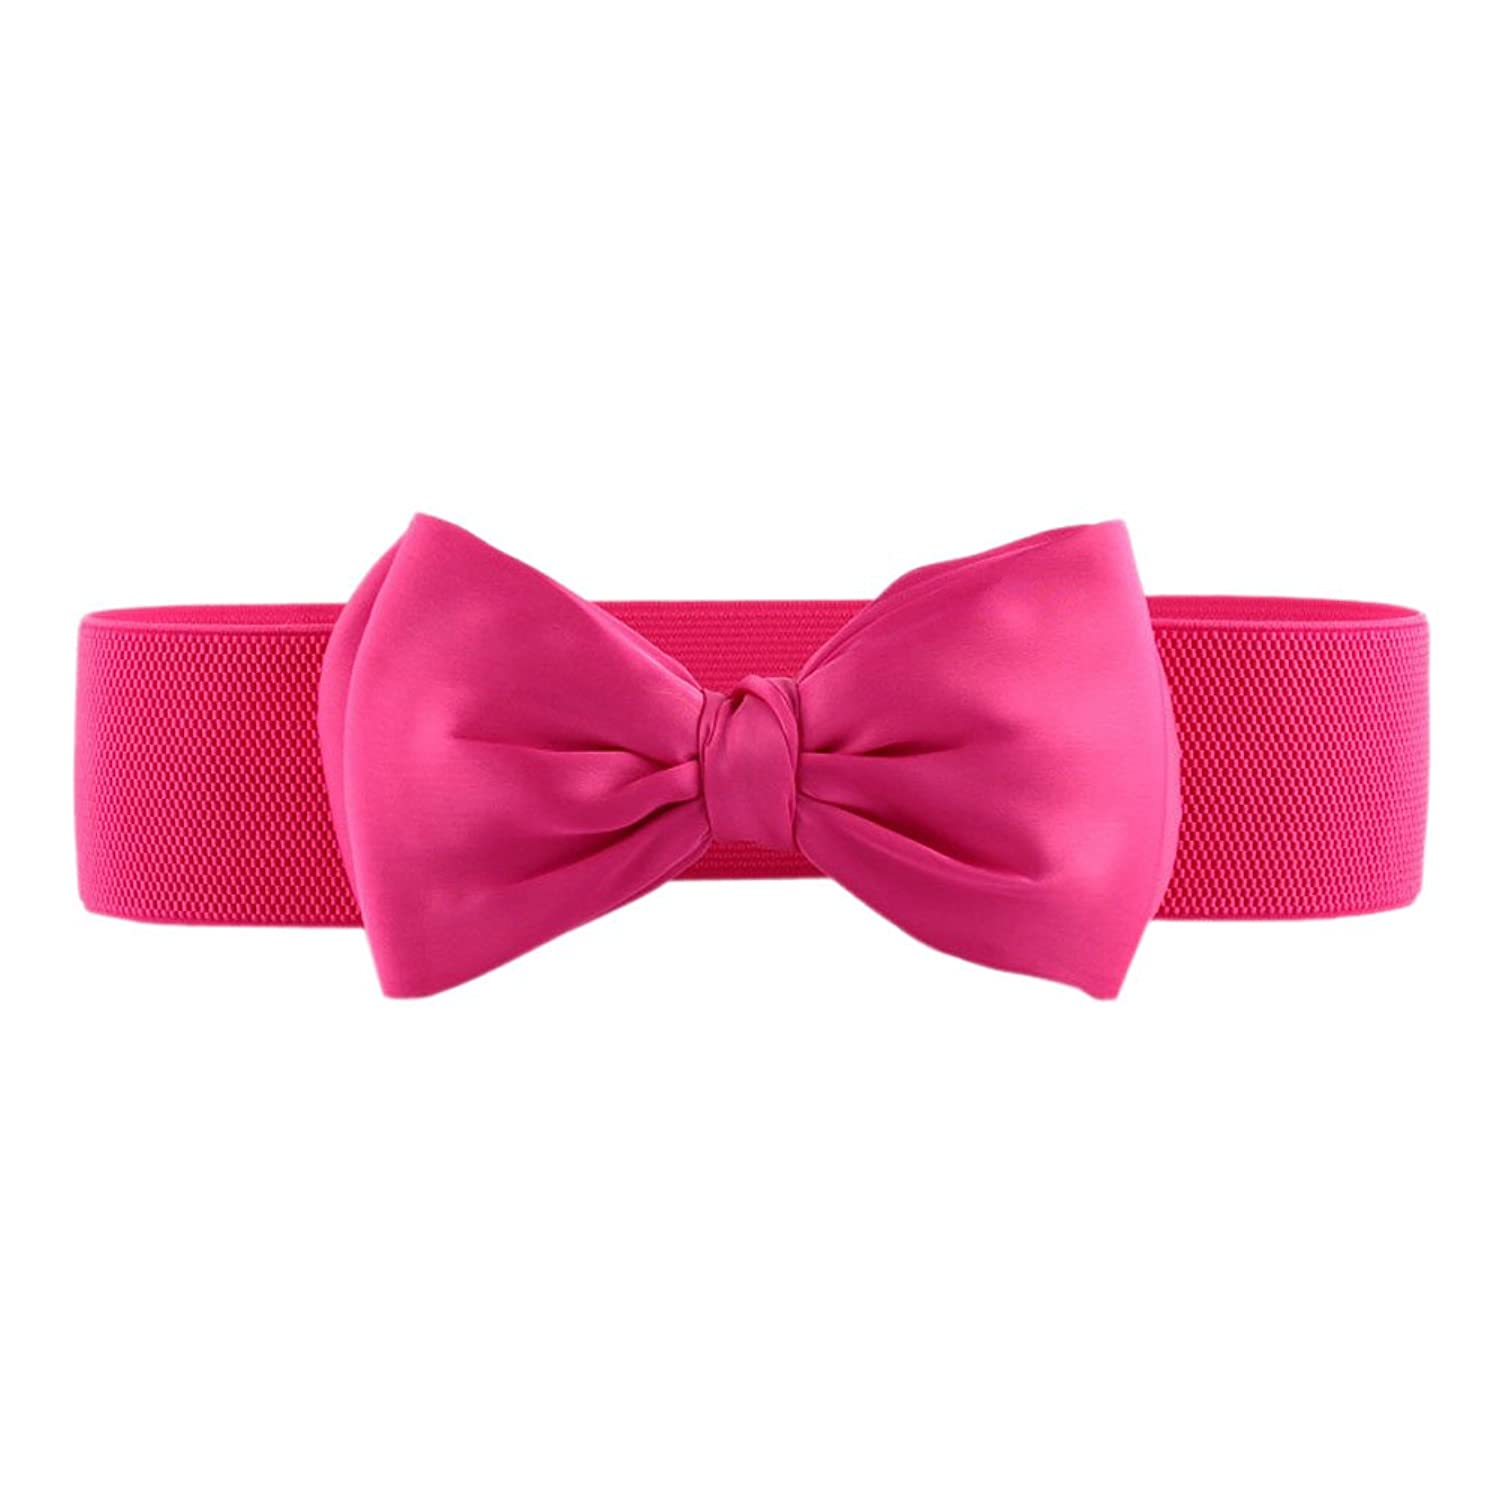 Mlotus Teen Girls Wide Satin Bow Buckle Womens Elastic Waist Belt Cinch Belts